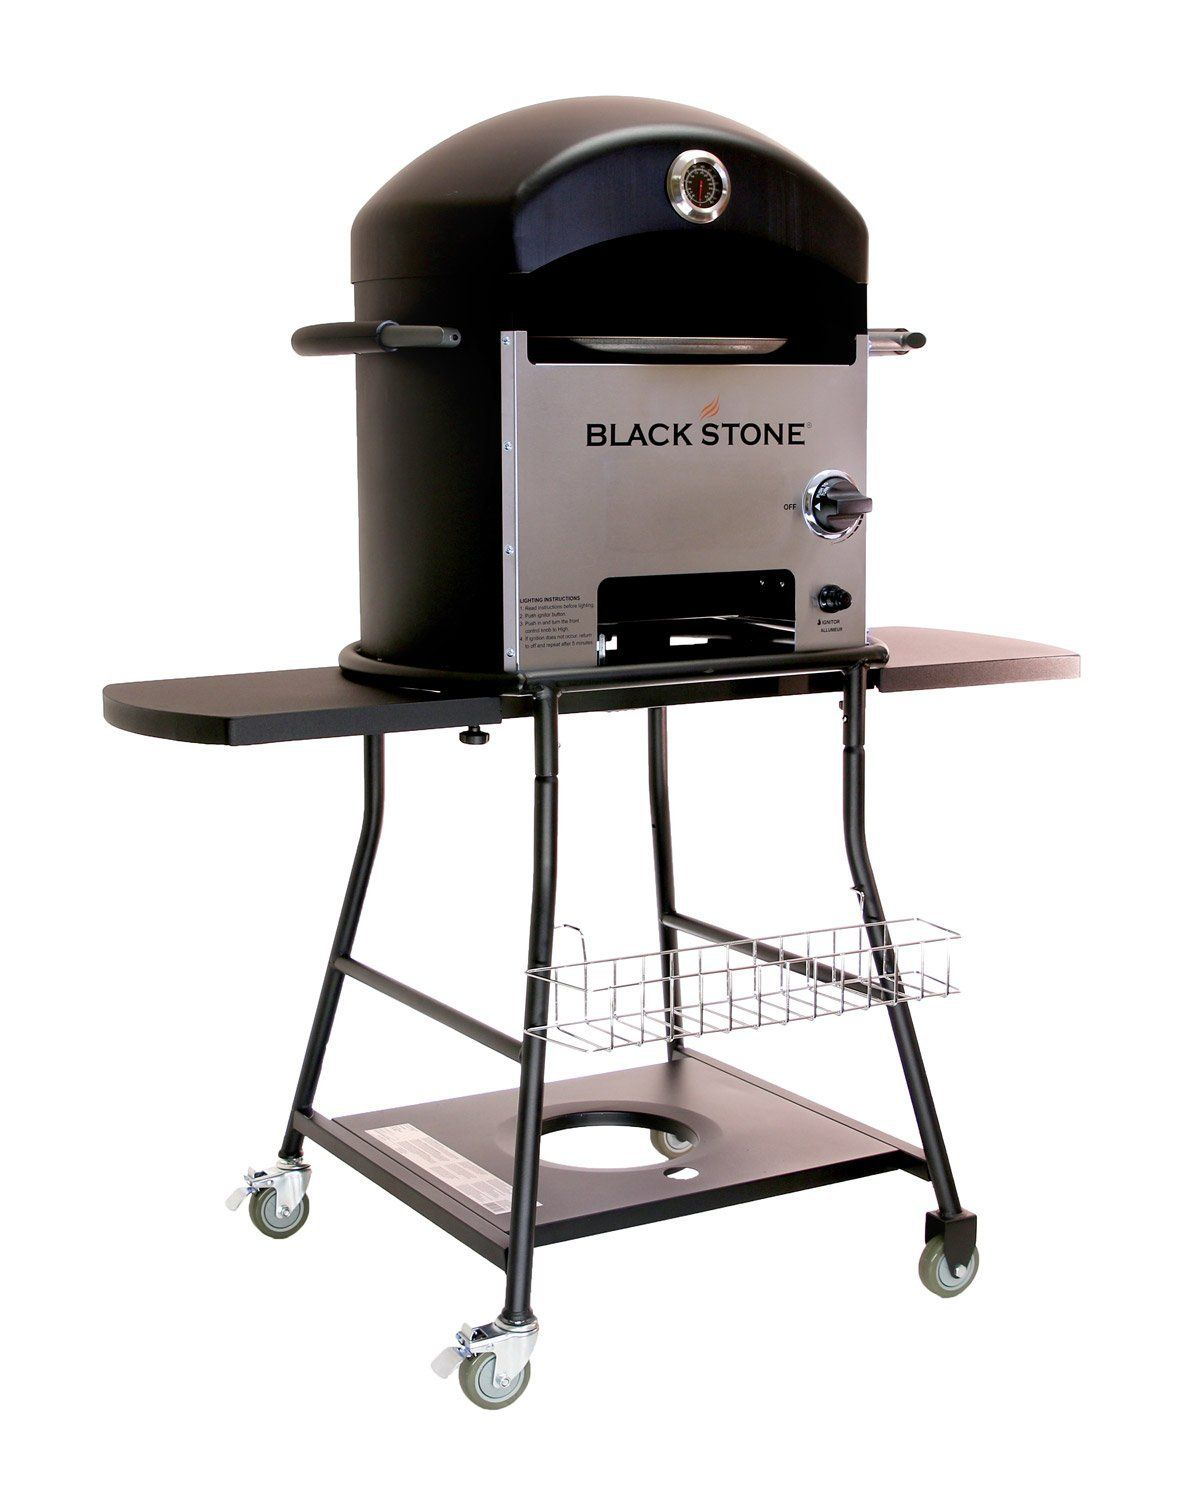 Blackstone Portable Outdoor Pizza Oven for Outdoor Cooking | Outdoor ...